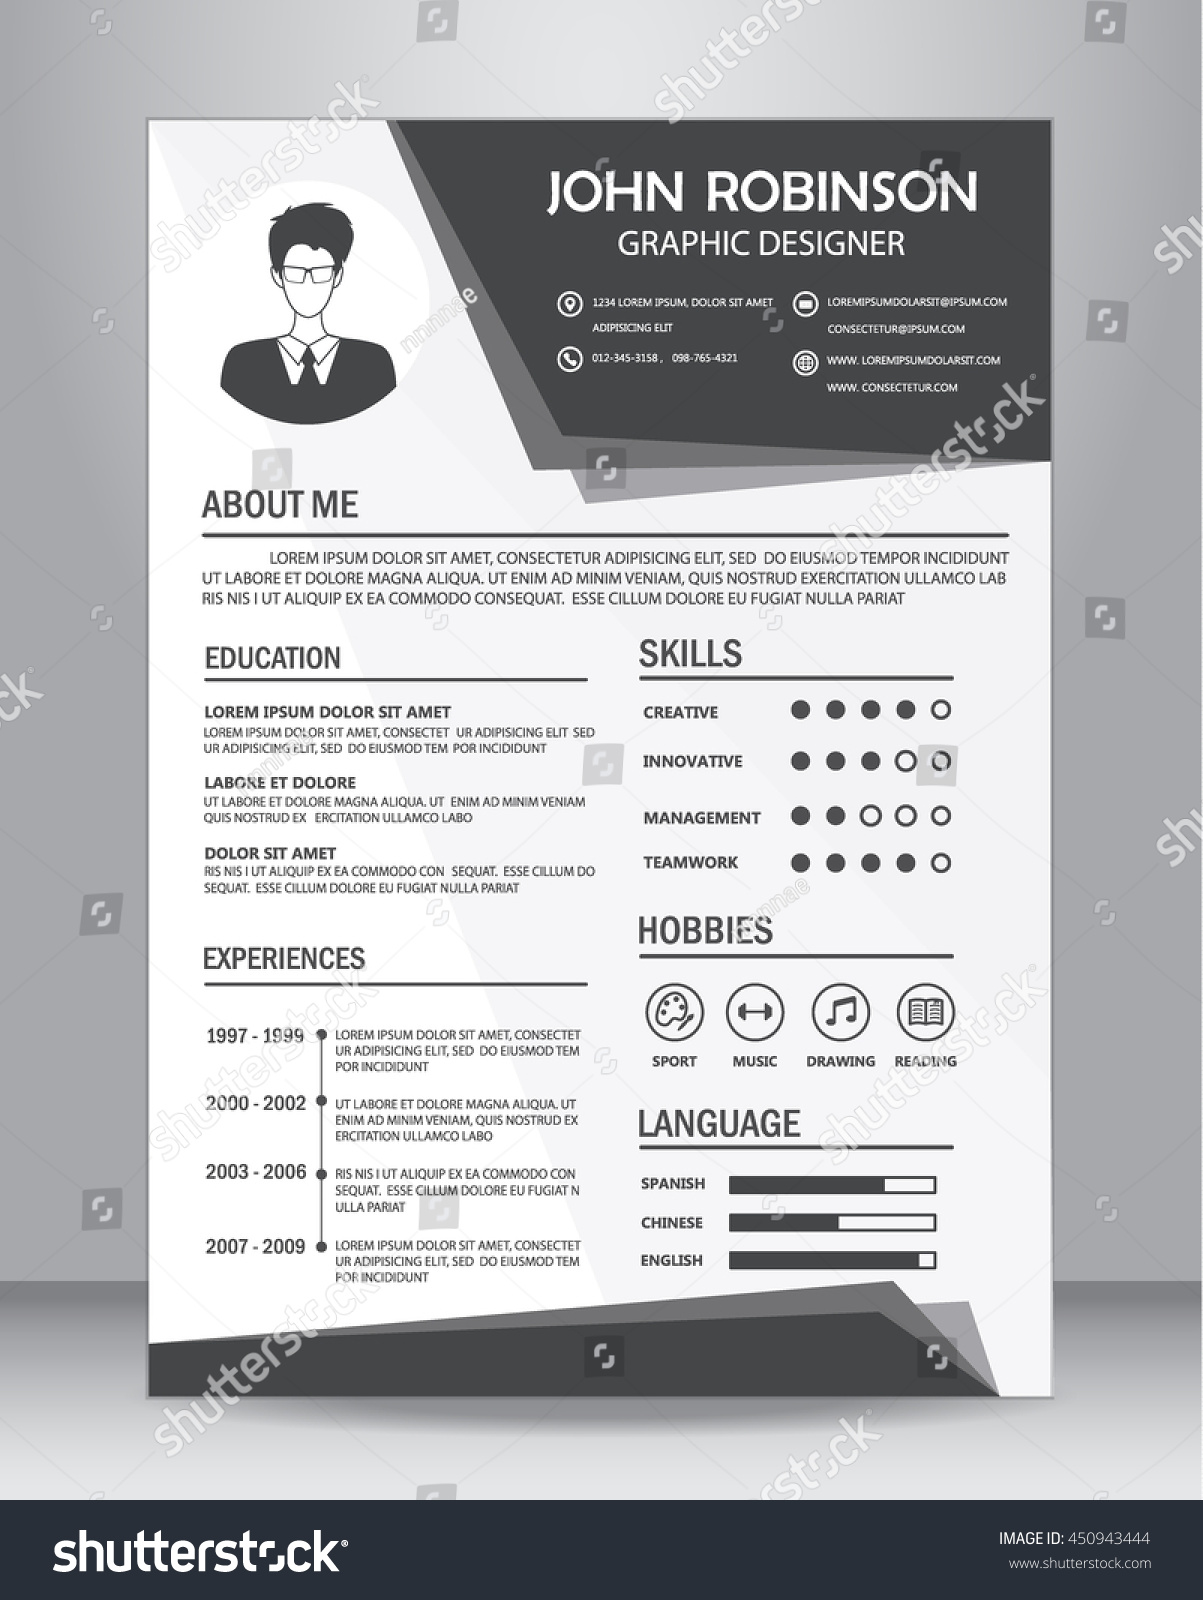 job resume or cv template layout template in a size vector job resume or cv template layout template in a4 size vector illustration